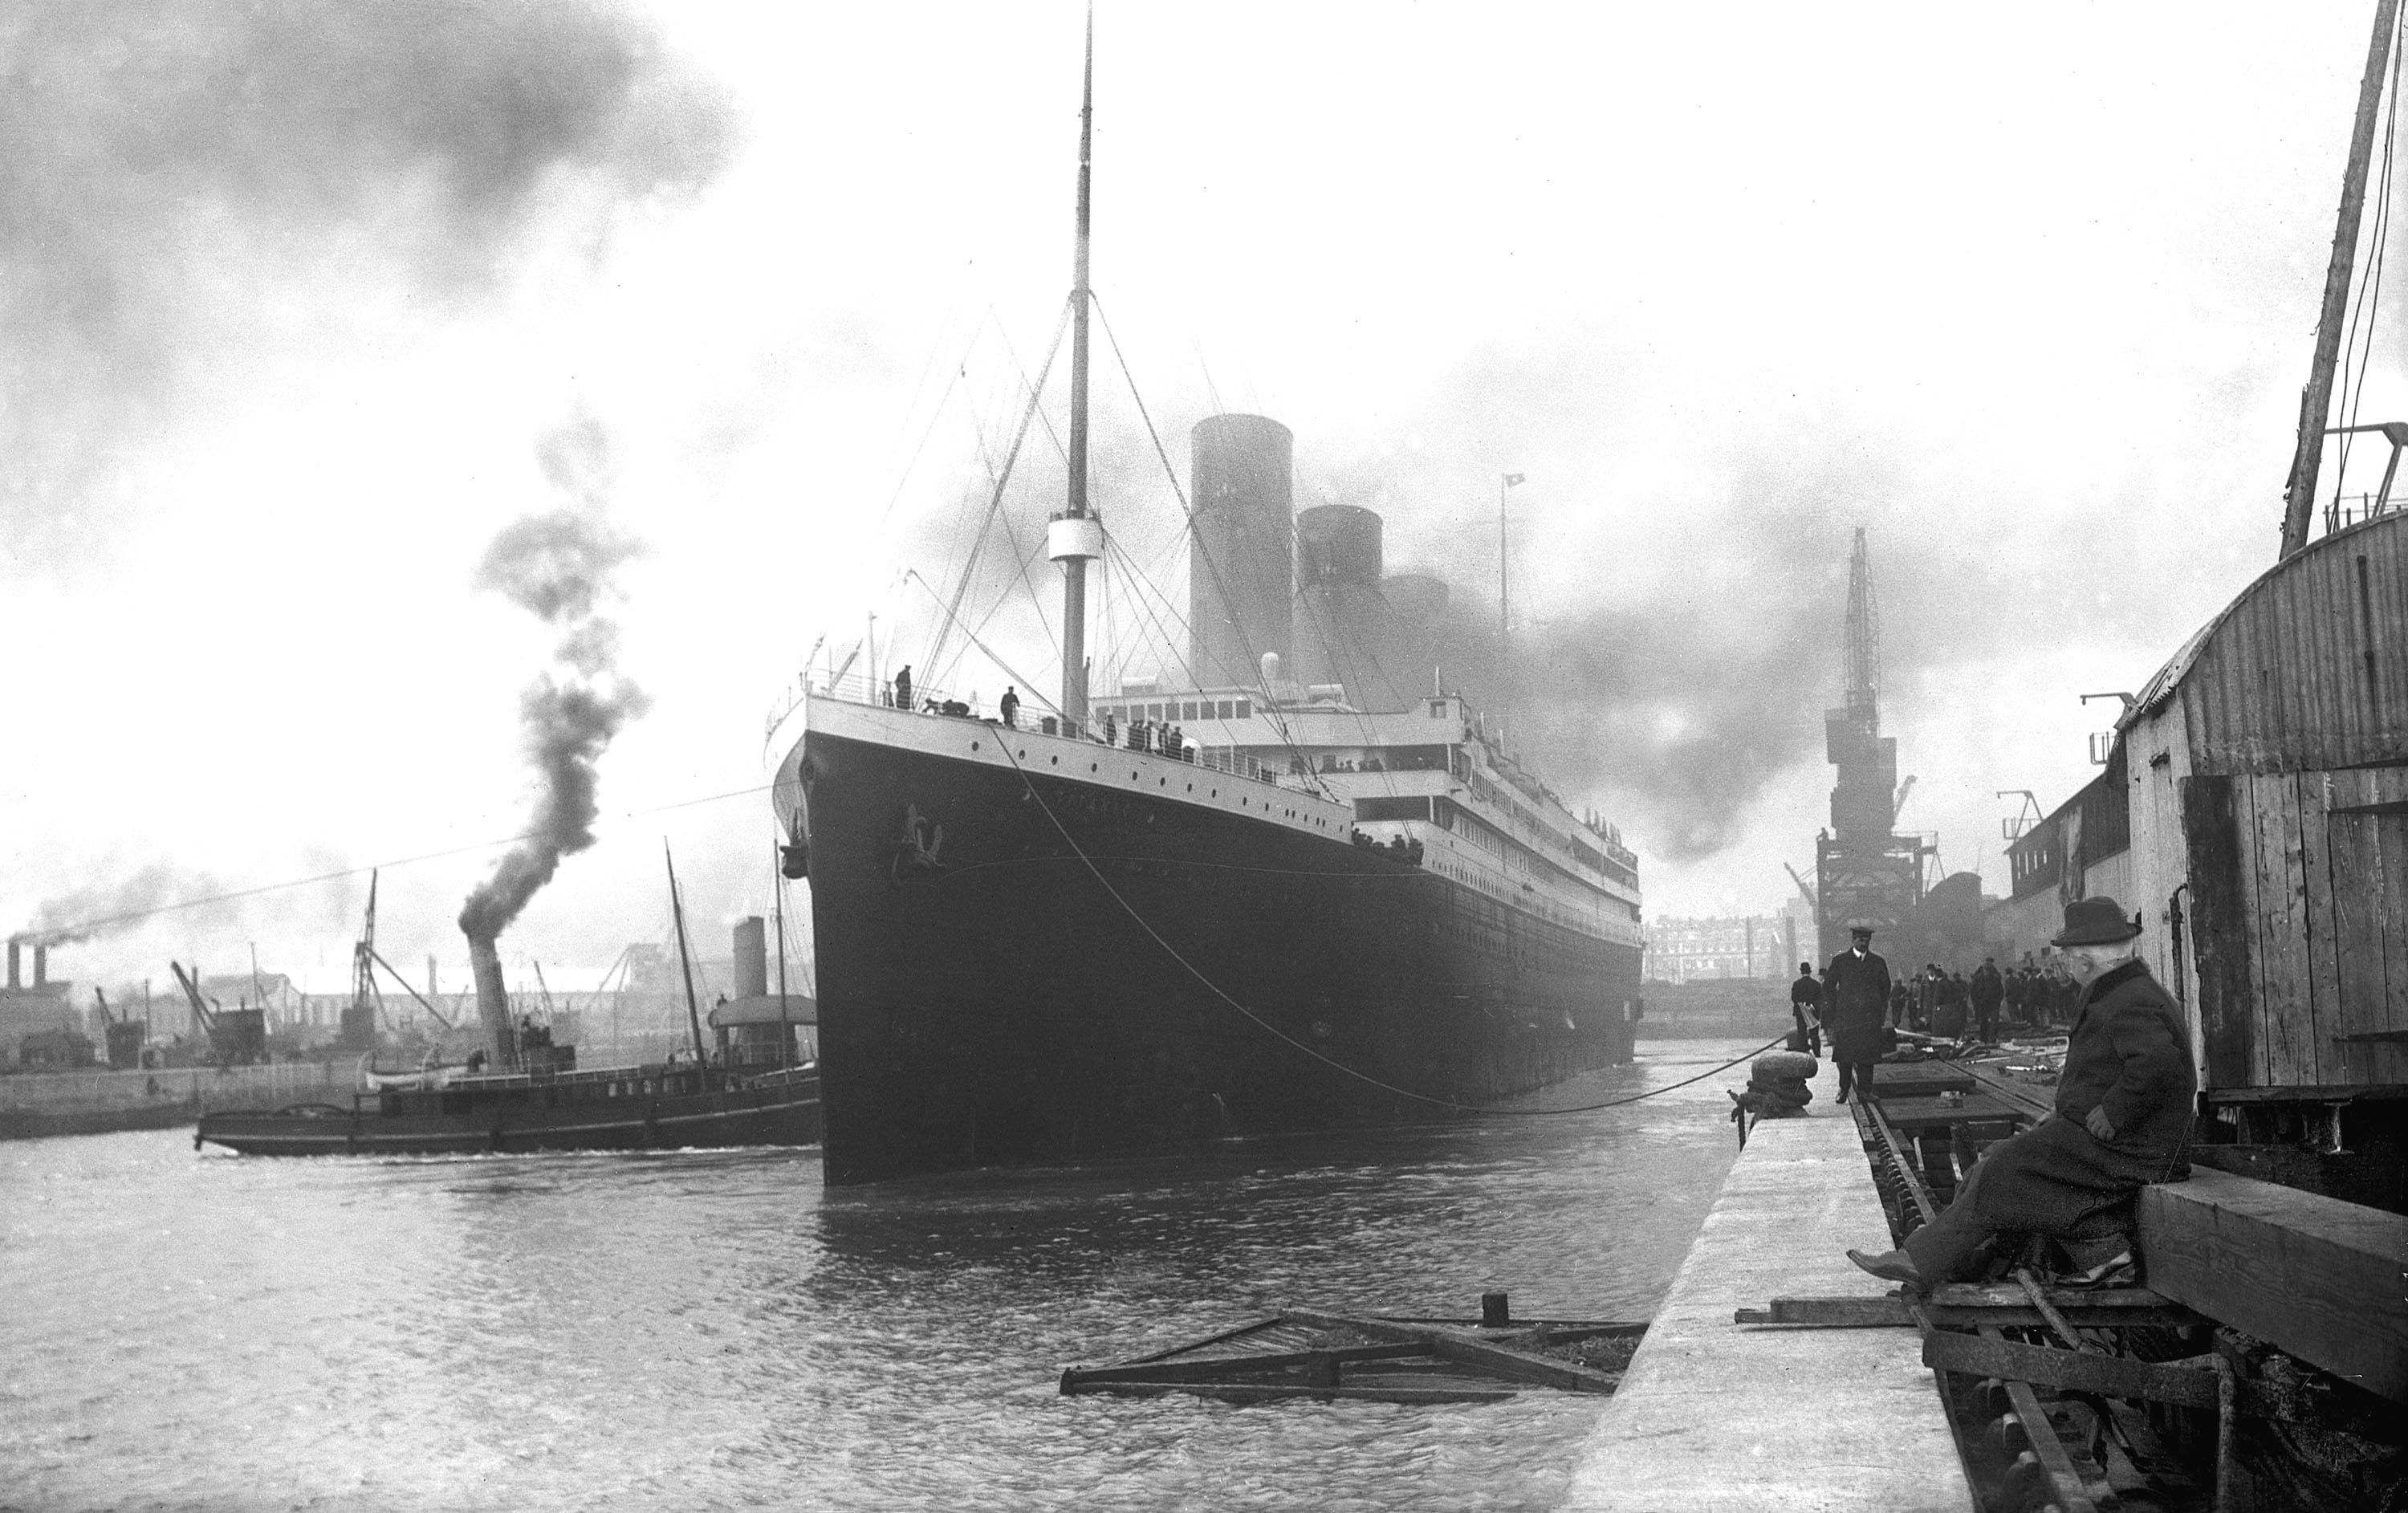 The normal depiction of Titanic at Portsmouth